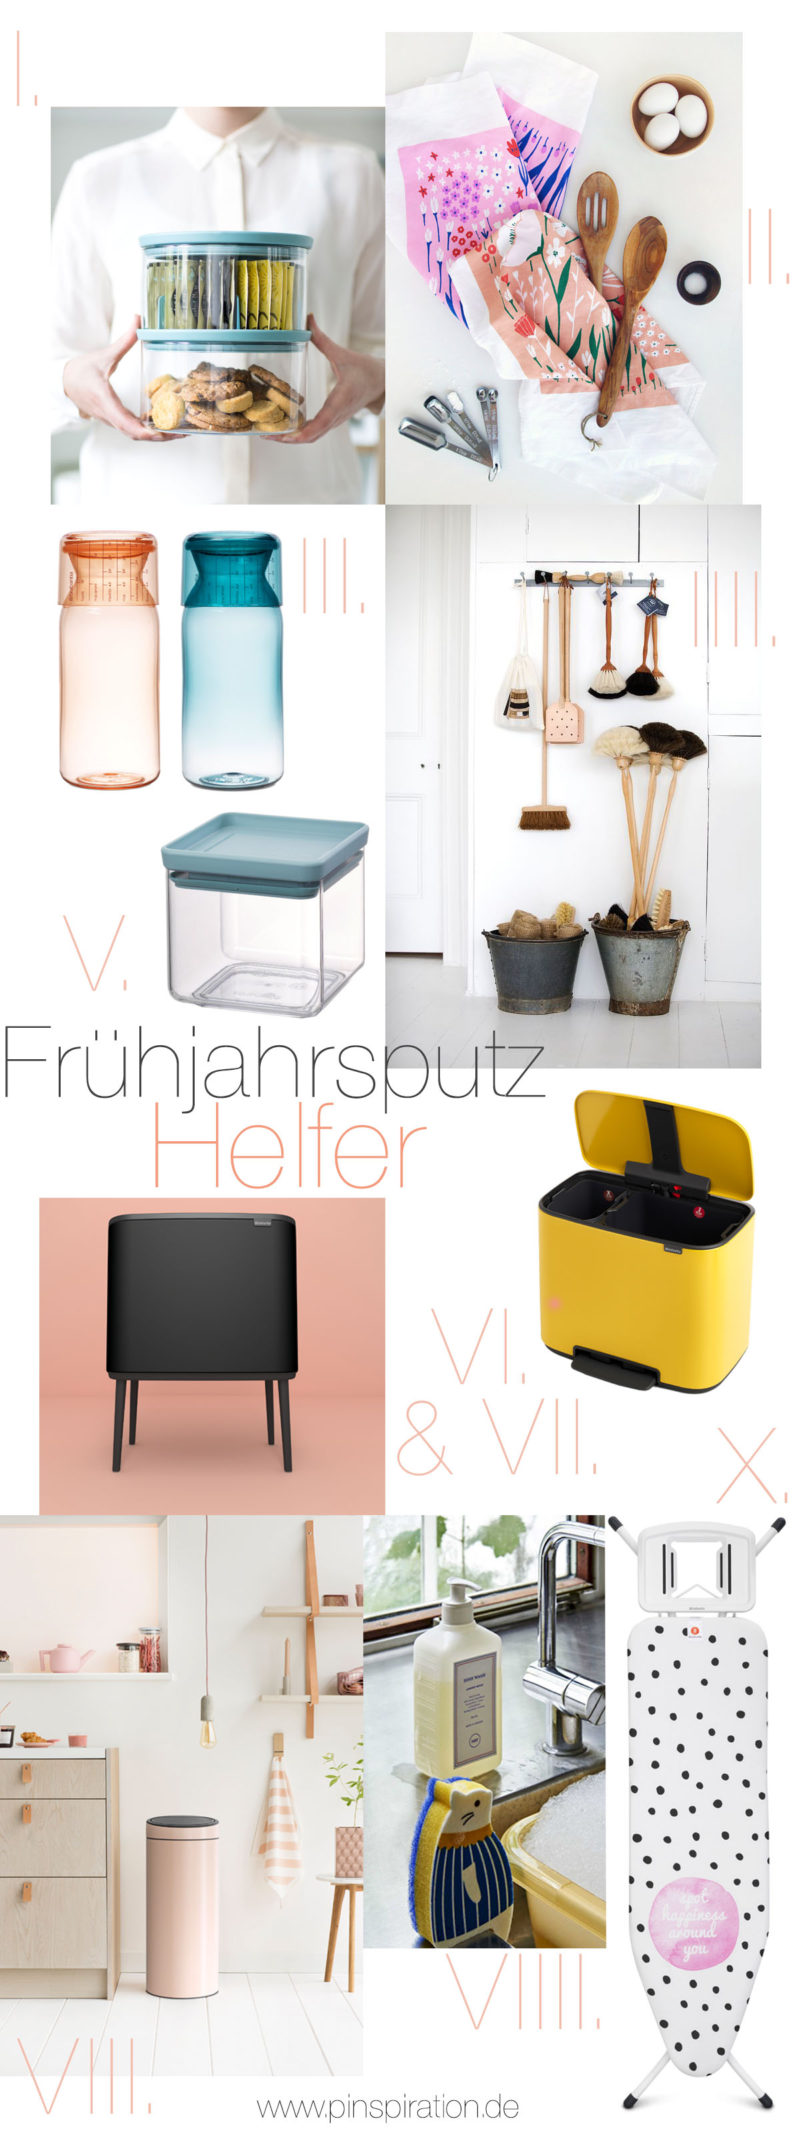 aufr umen ausmisten putzen ran an den fr hjahrsputz und gutes tun. Black Bedroom Furniture Sets. Home Design Ideas